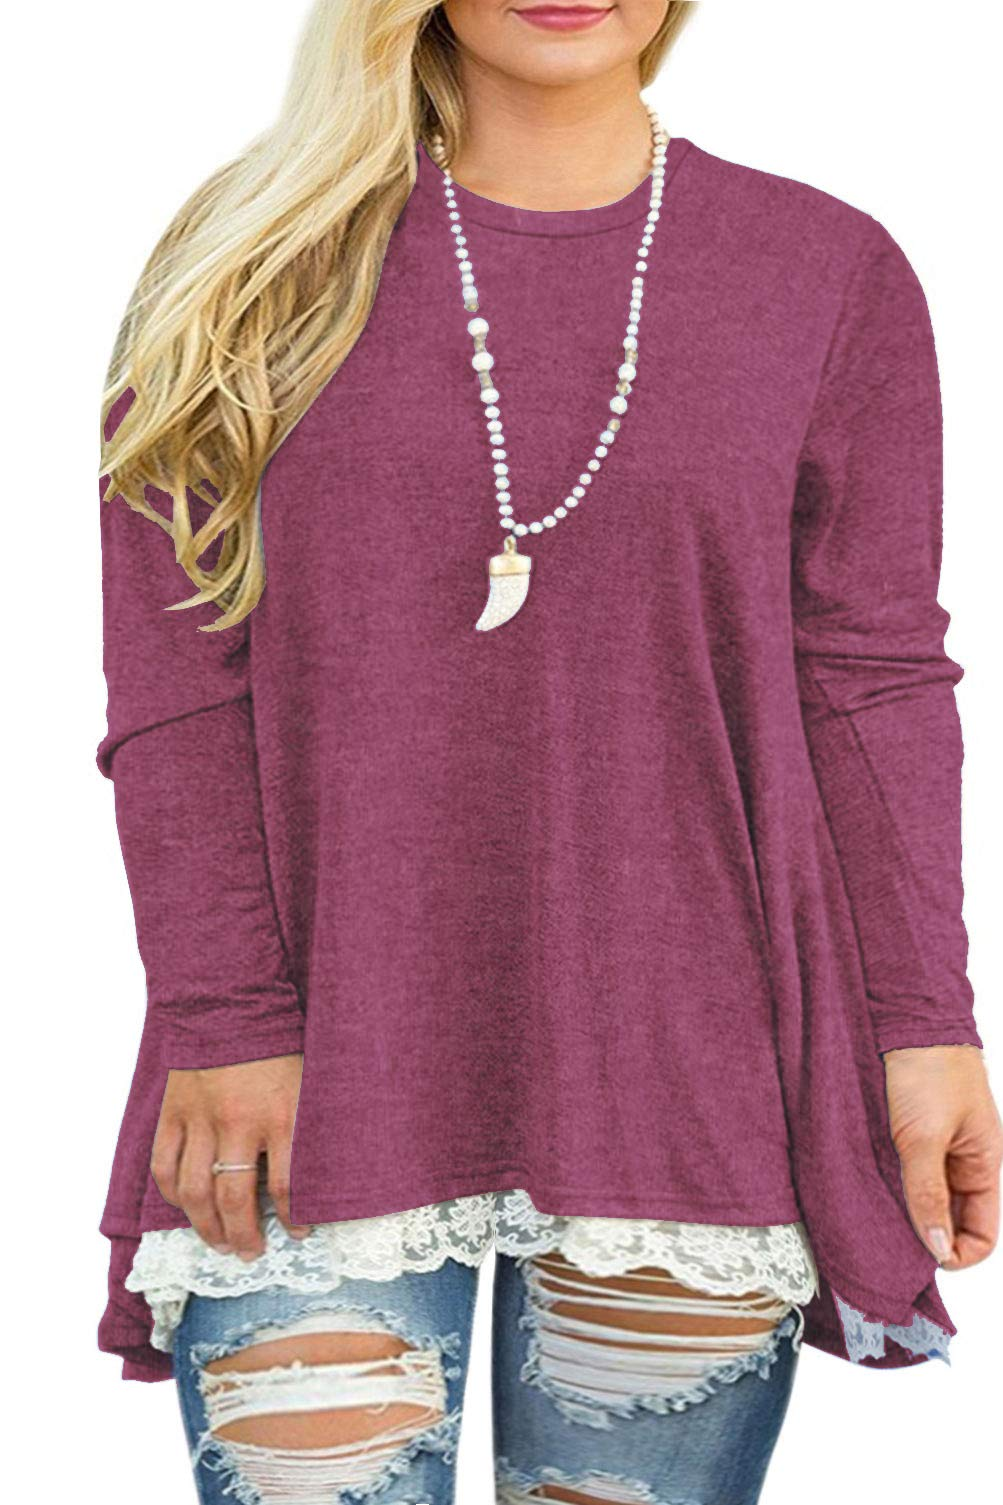 Plus Size Clothing - Womens Plus Size Tunic Tops Casual Lace Long Sleeve A-Line Blouse Shirt